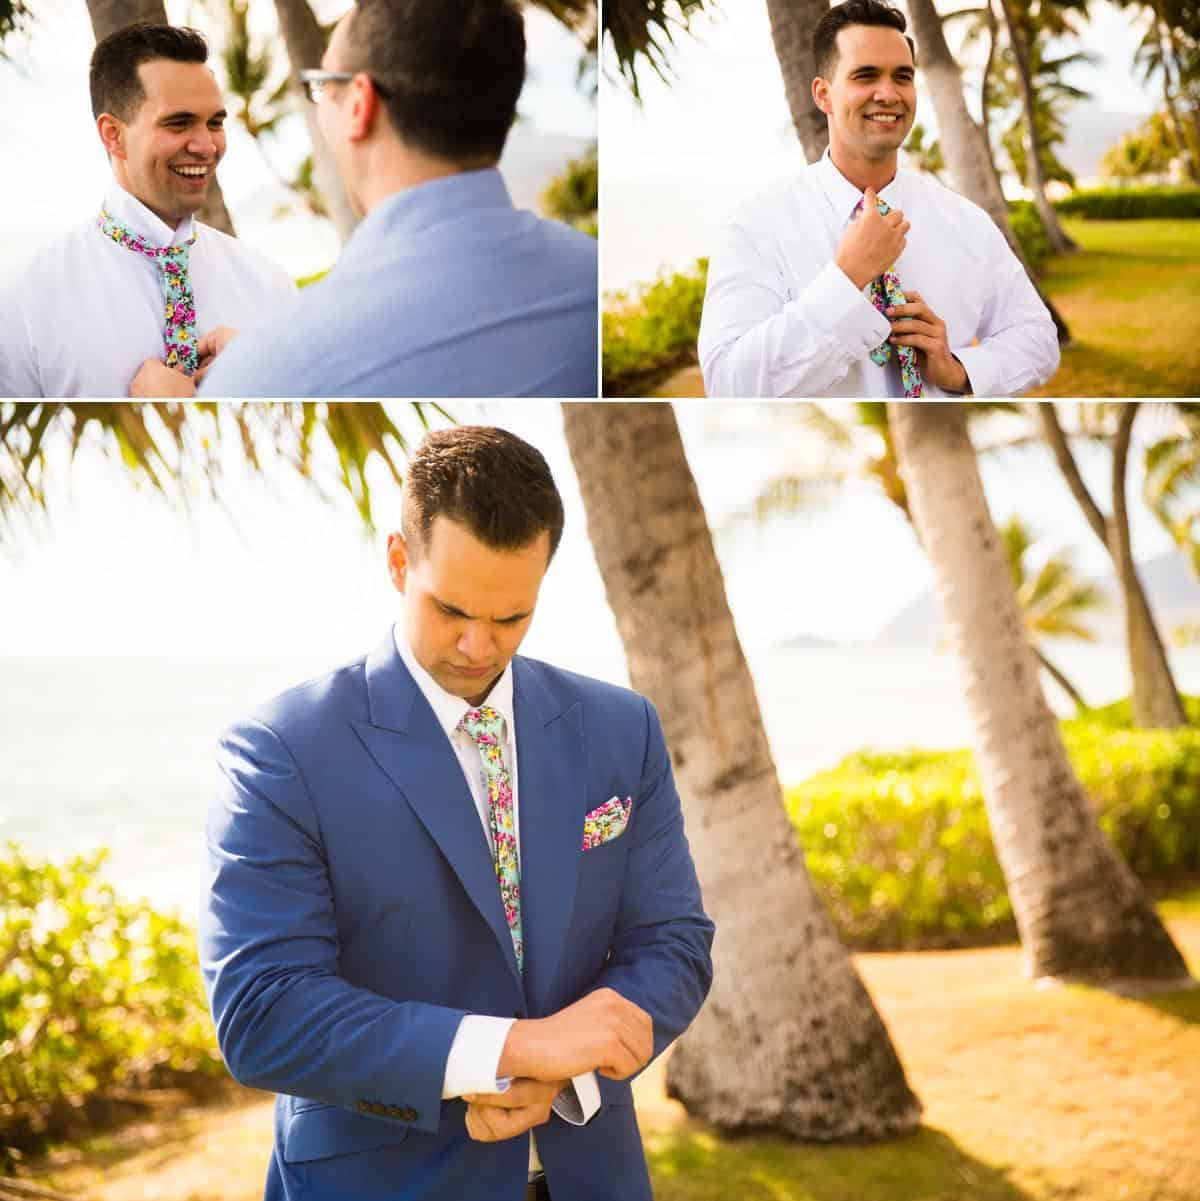 Groom getting ready for wedding Hawaii Destination wedding photographer www.benandhopeweddings.com.au